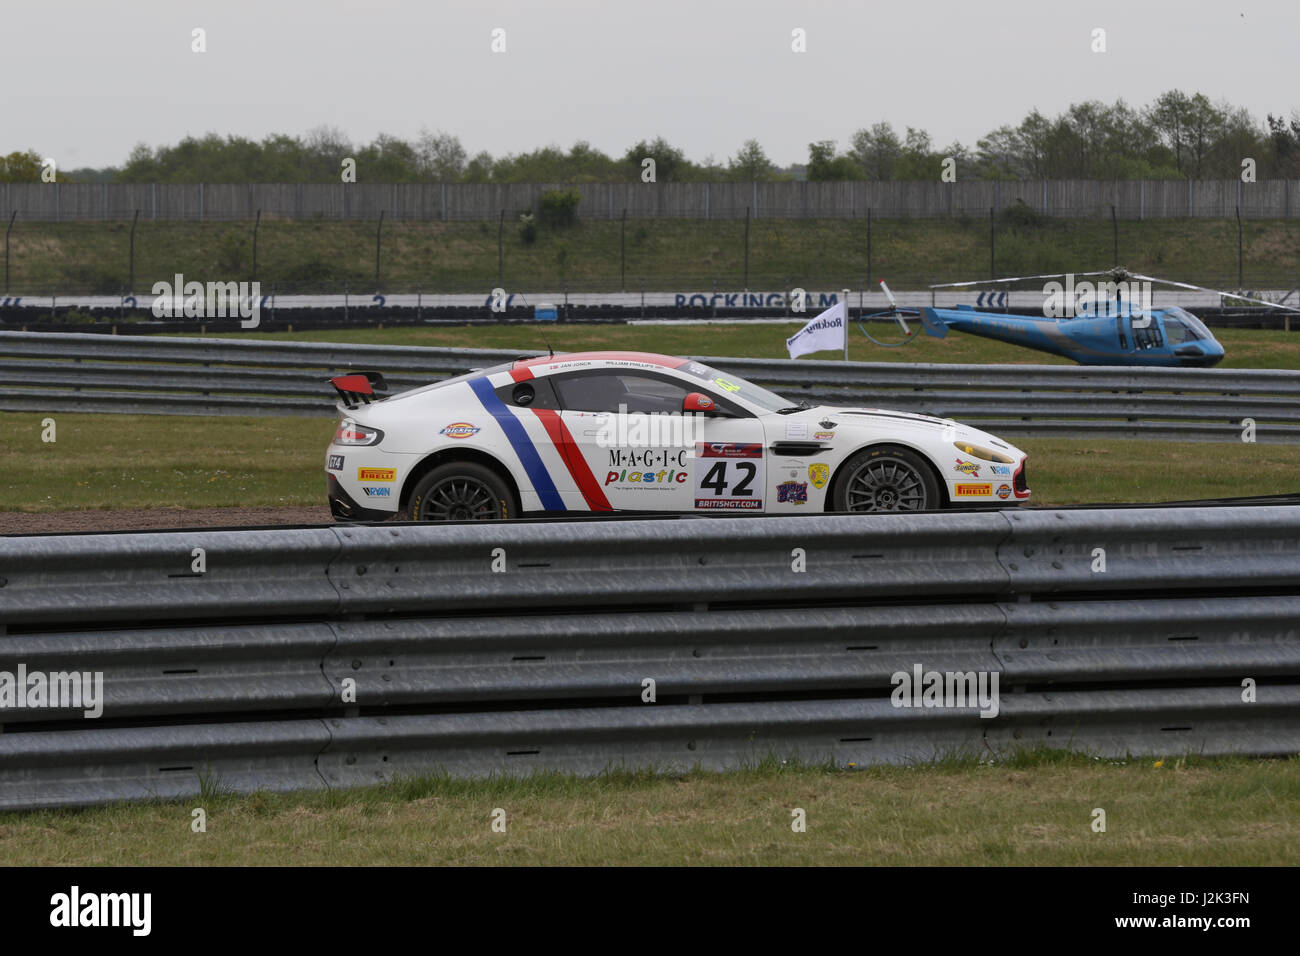 The Macmillan AMR GT4 car of Williams Phillips and Jan Joncks spins out of Free Practice 2 for the British GT at Rockingham Motor Speedway Credit: ...